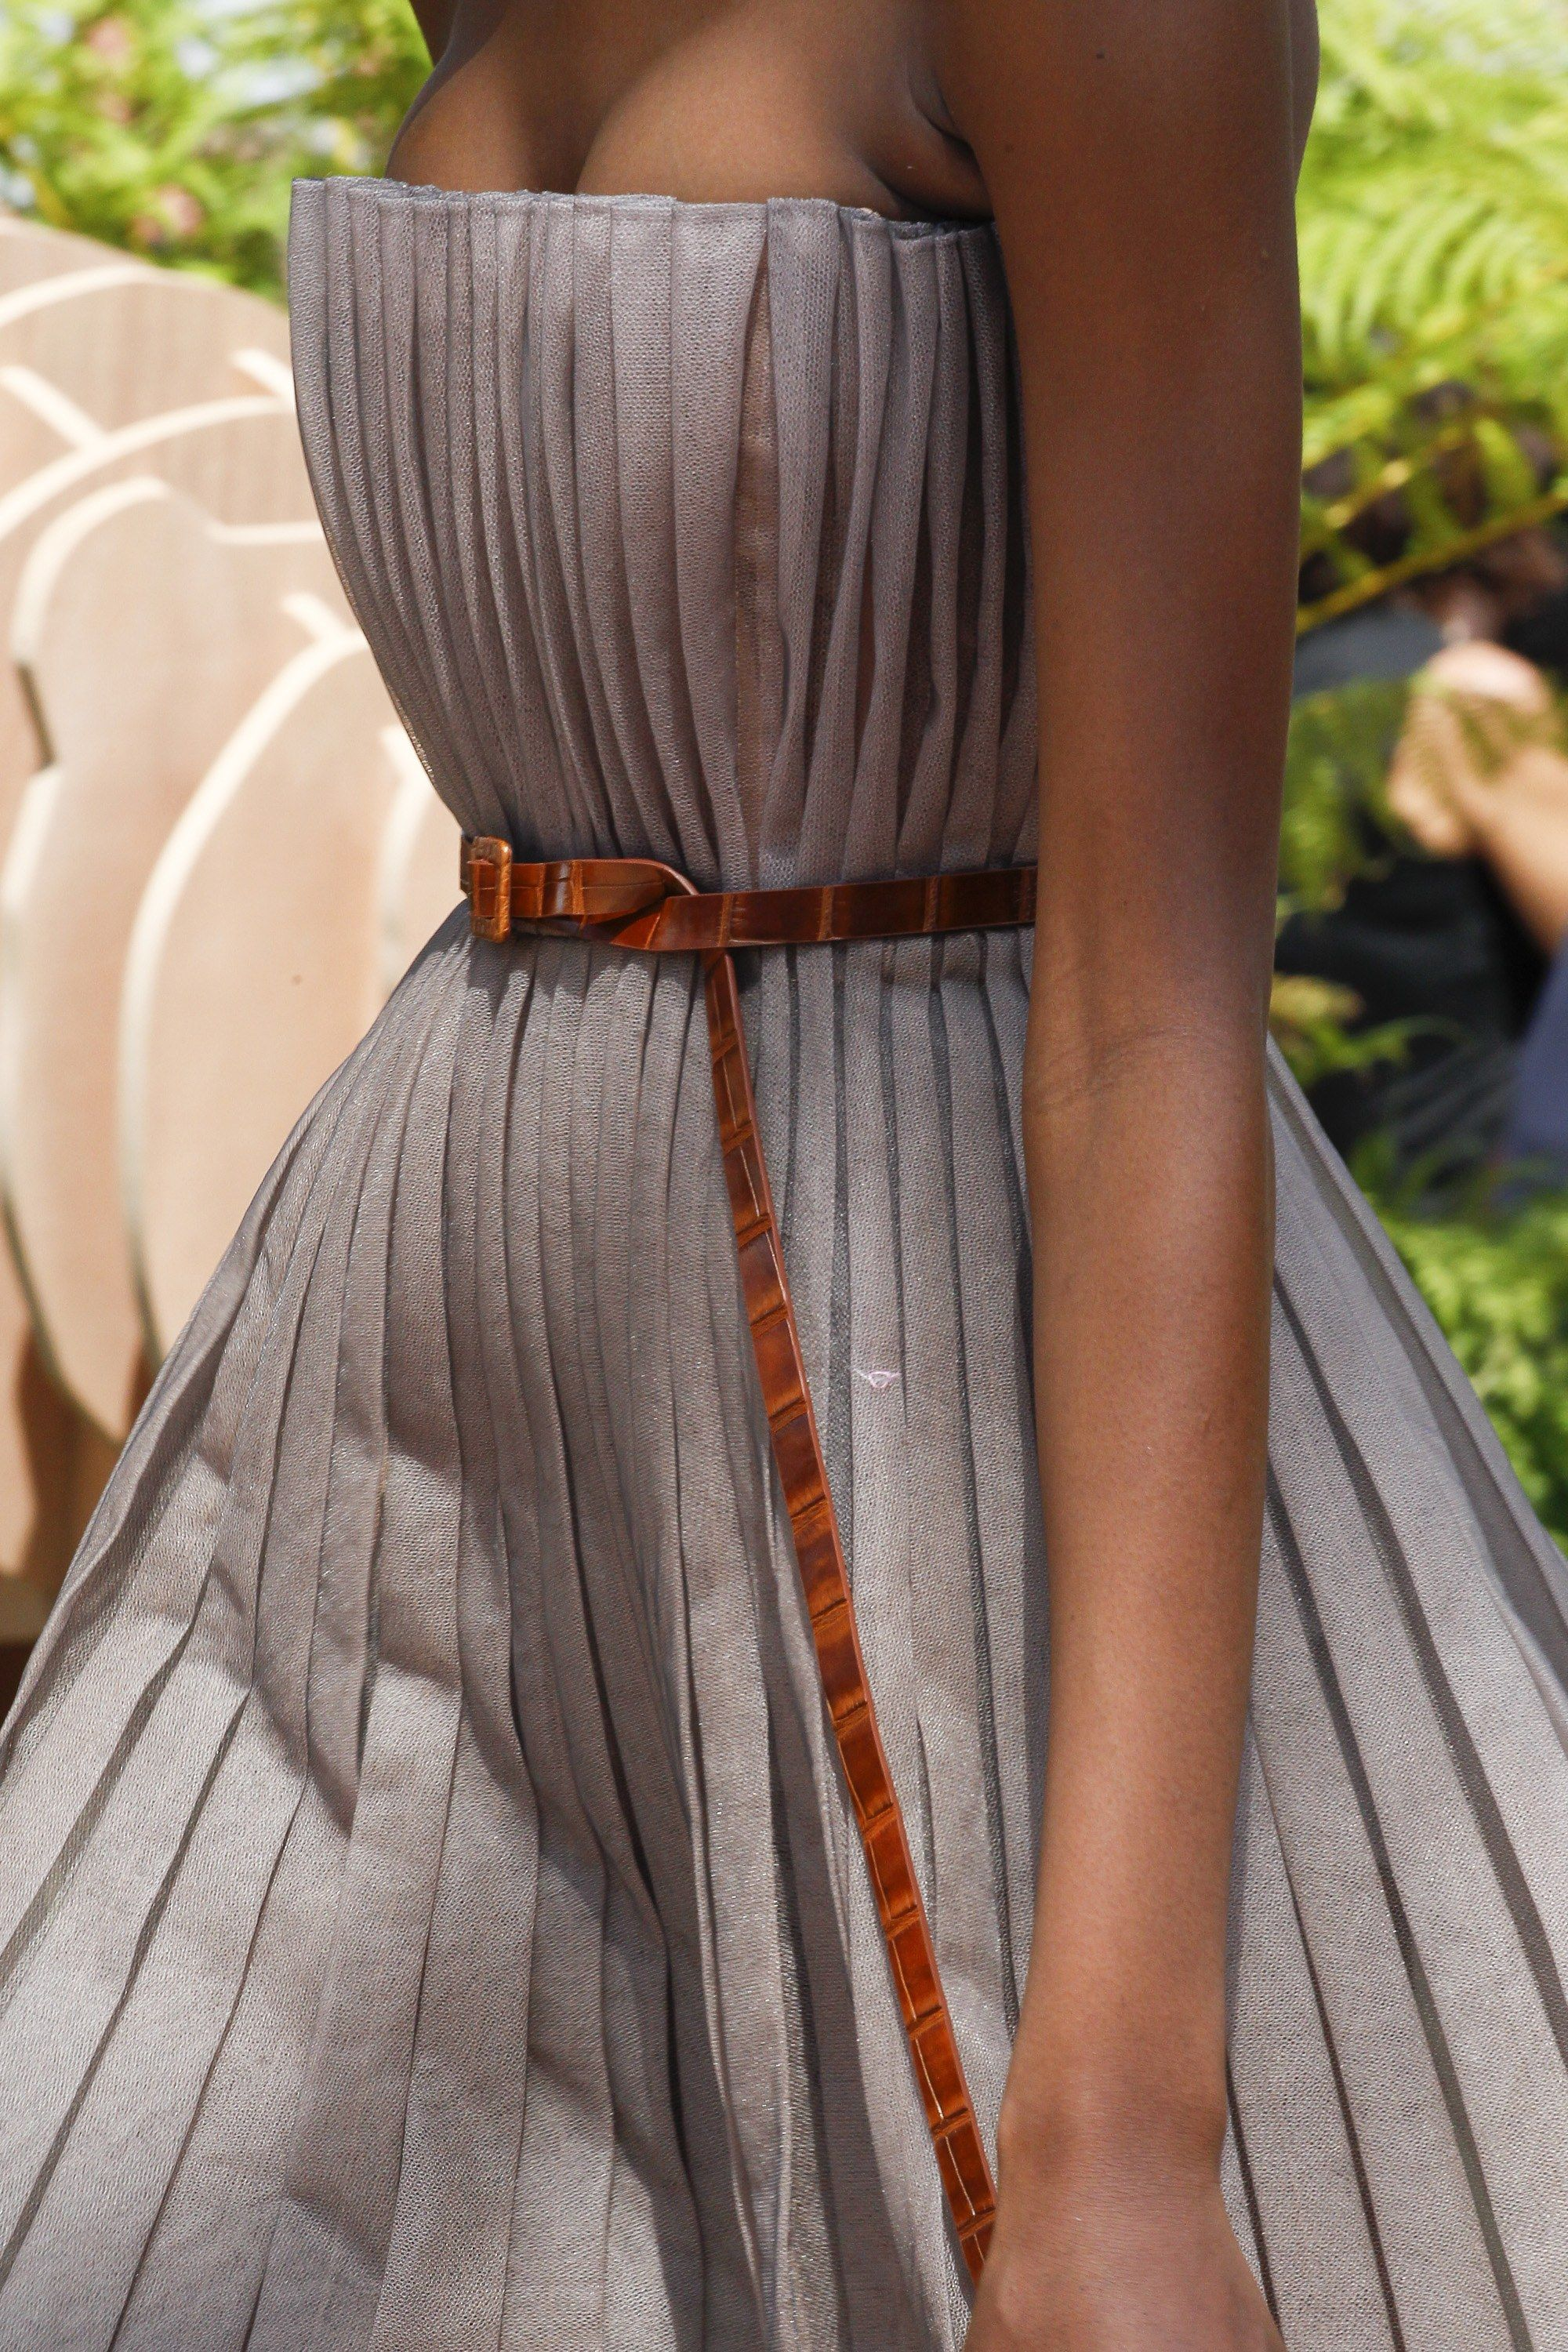 Christian Dior Fall 2017 Couture Accessories Photos - Vogue